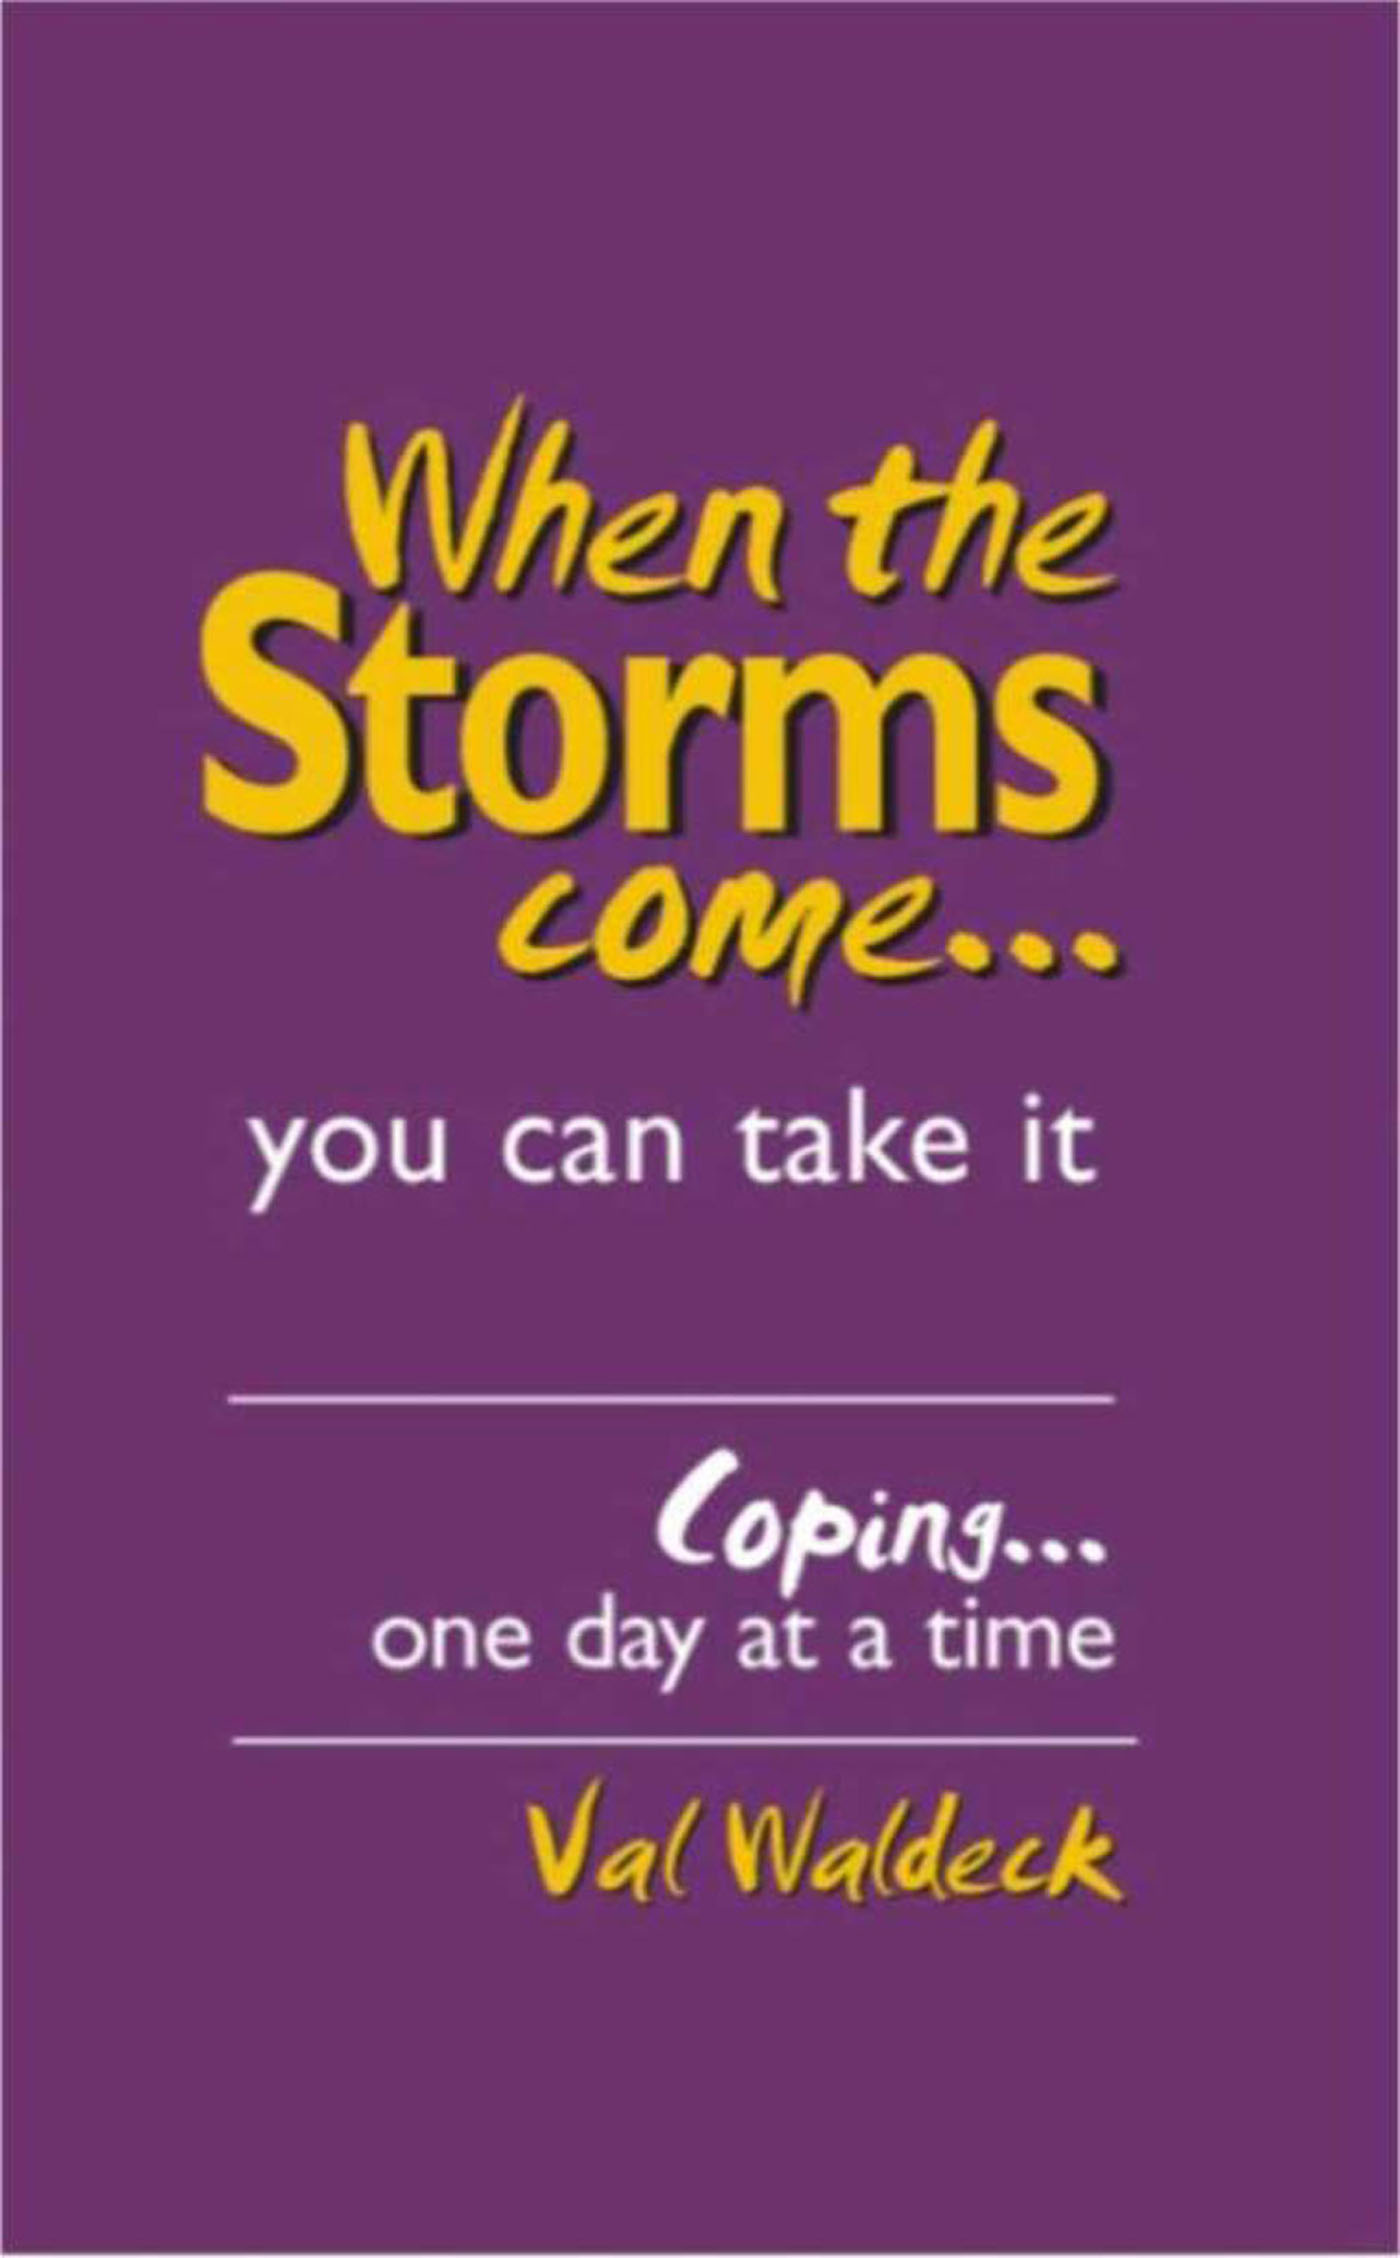 When The Storms Come (sst-cccxxxvi)